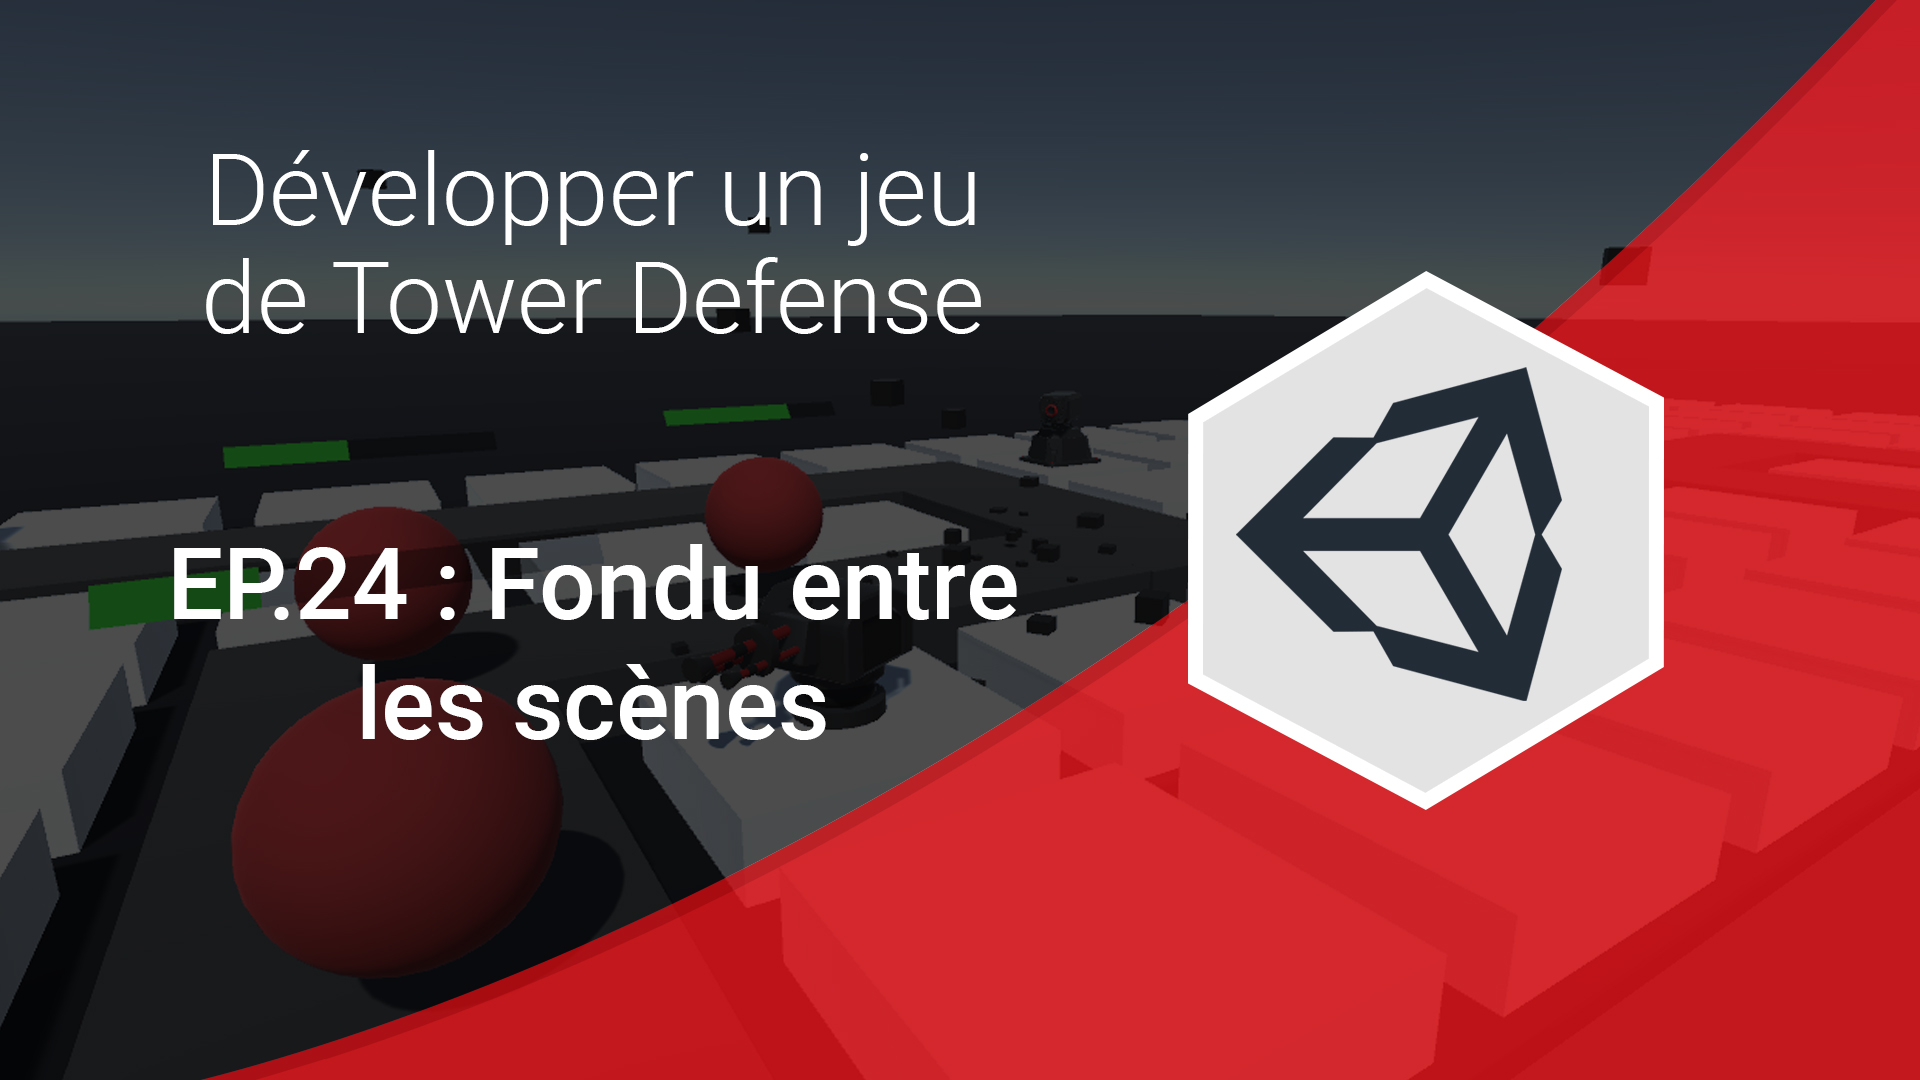 Fondu entre les scènes, tower defense unity 3d